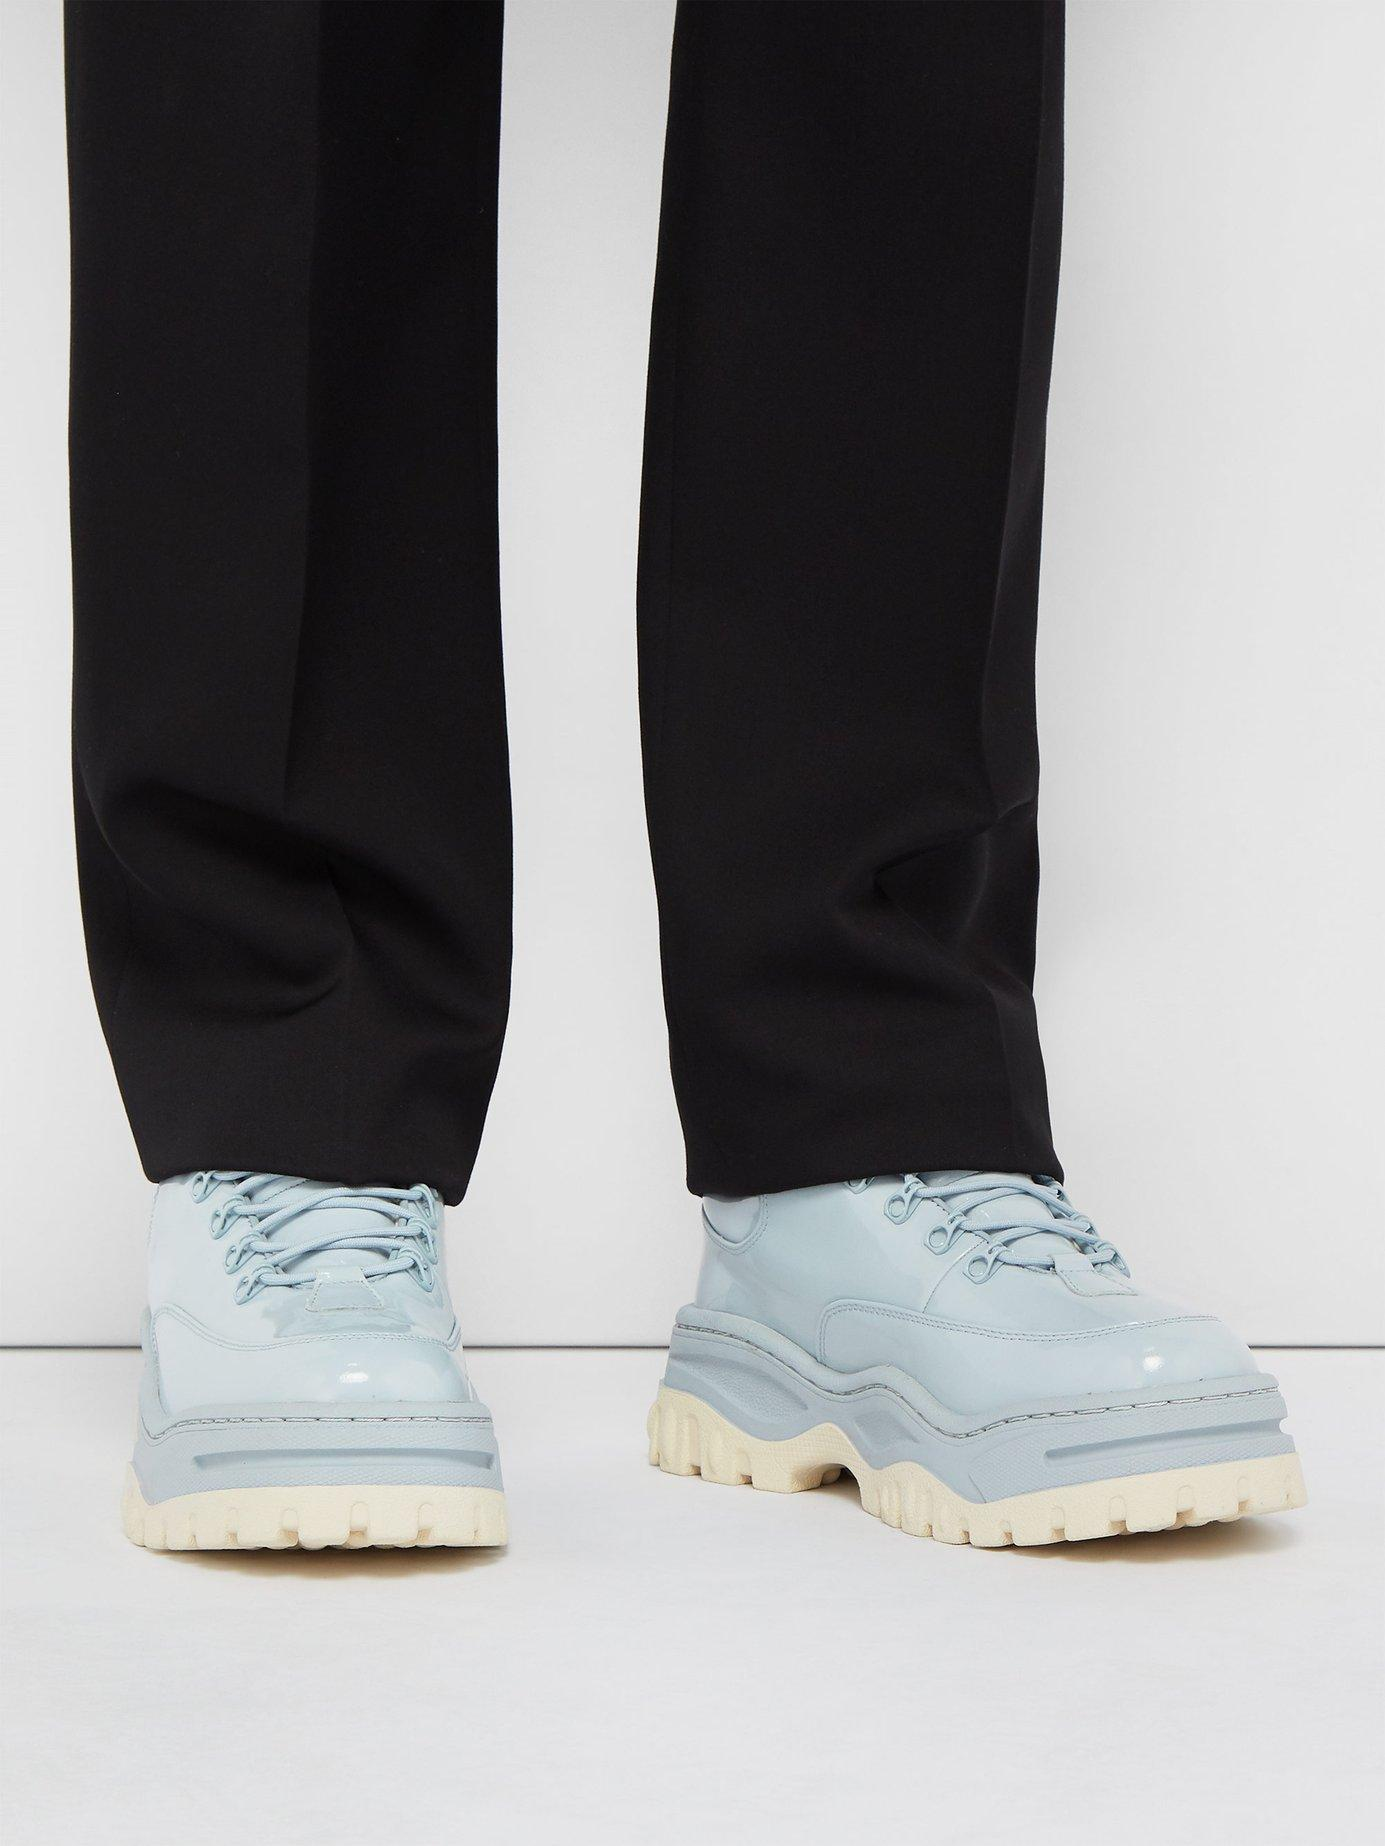 Blue Patent Angel Sneakers for Men - Lyst